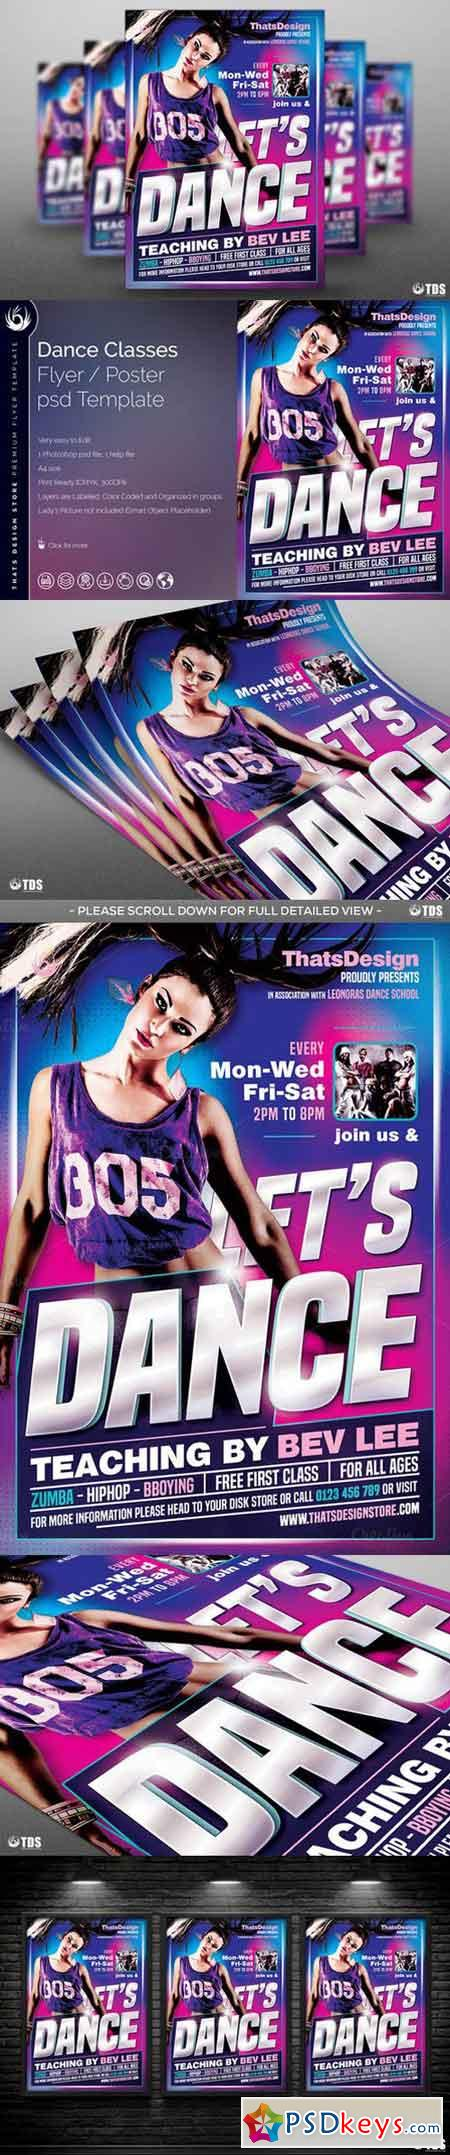 Dance Classes Flyer Template 764061